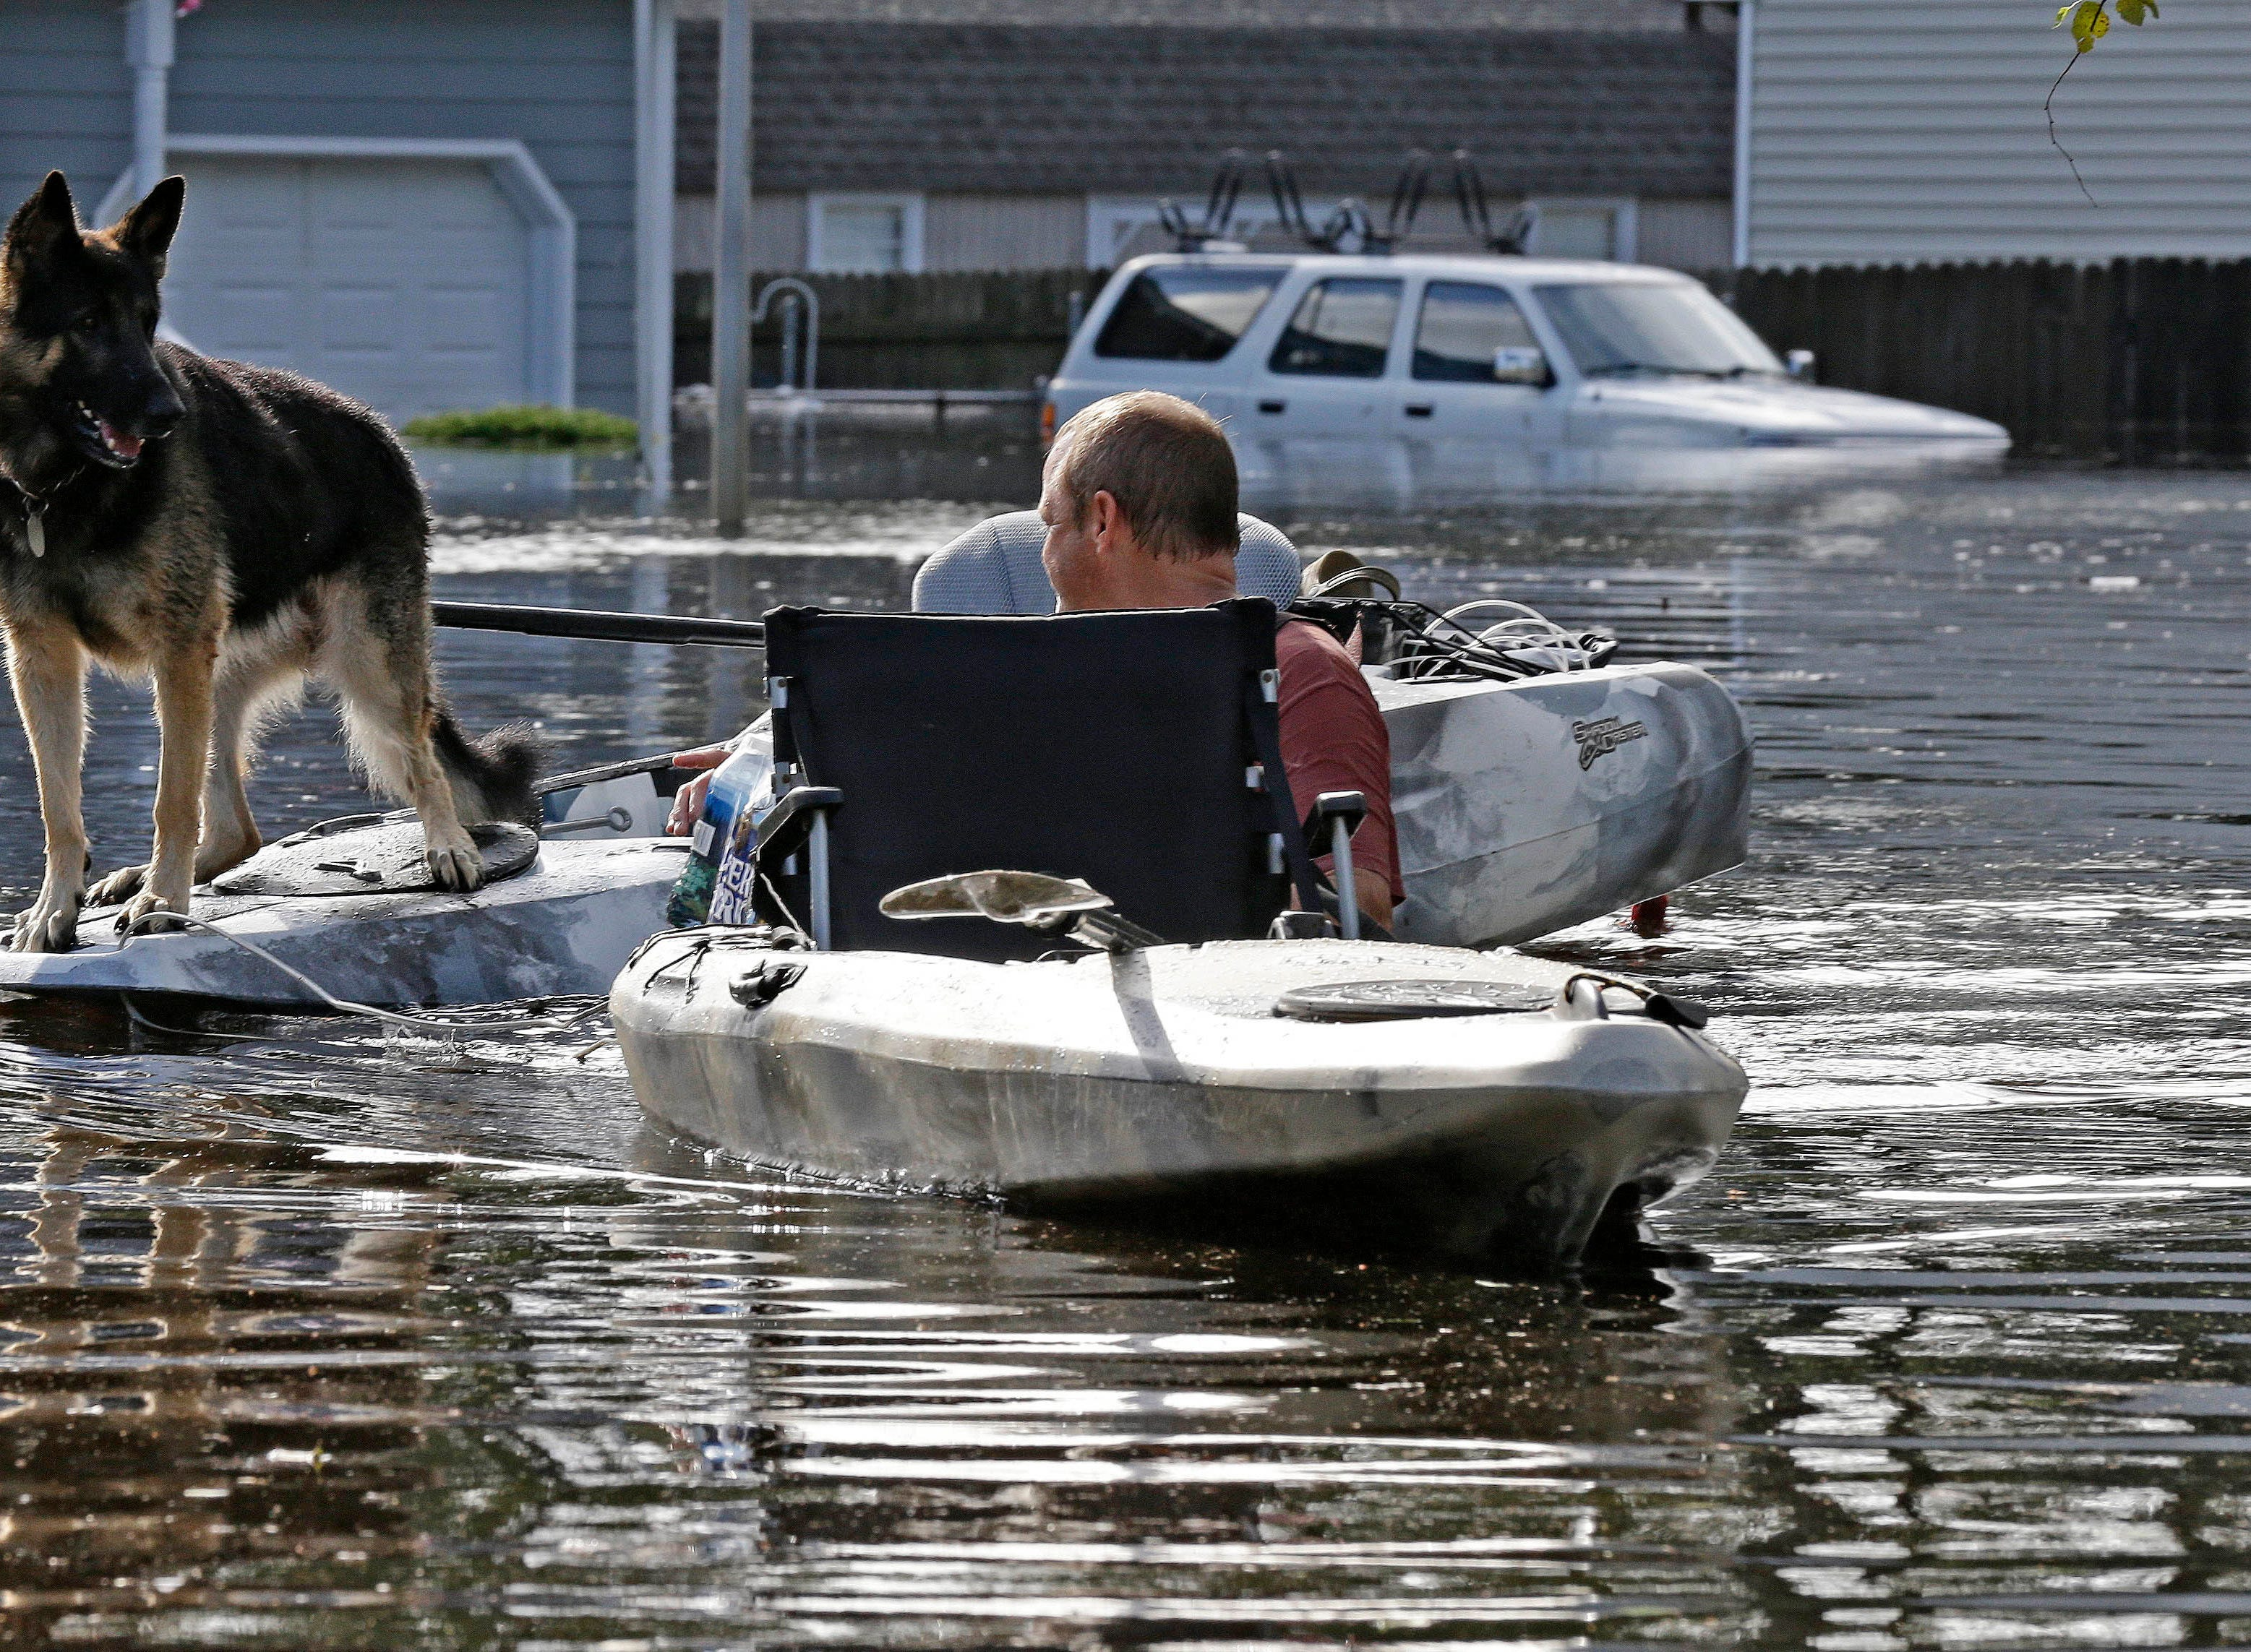 A man tries to get his dog out of a flooded neighborhood in Lumberton, N.C., Monday, Sept. 17, 2018, in the aftermath of Hurricane Florence.